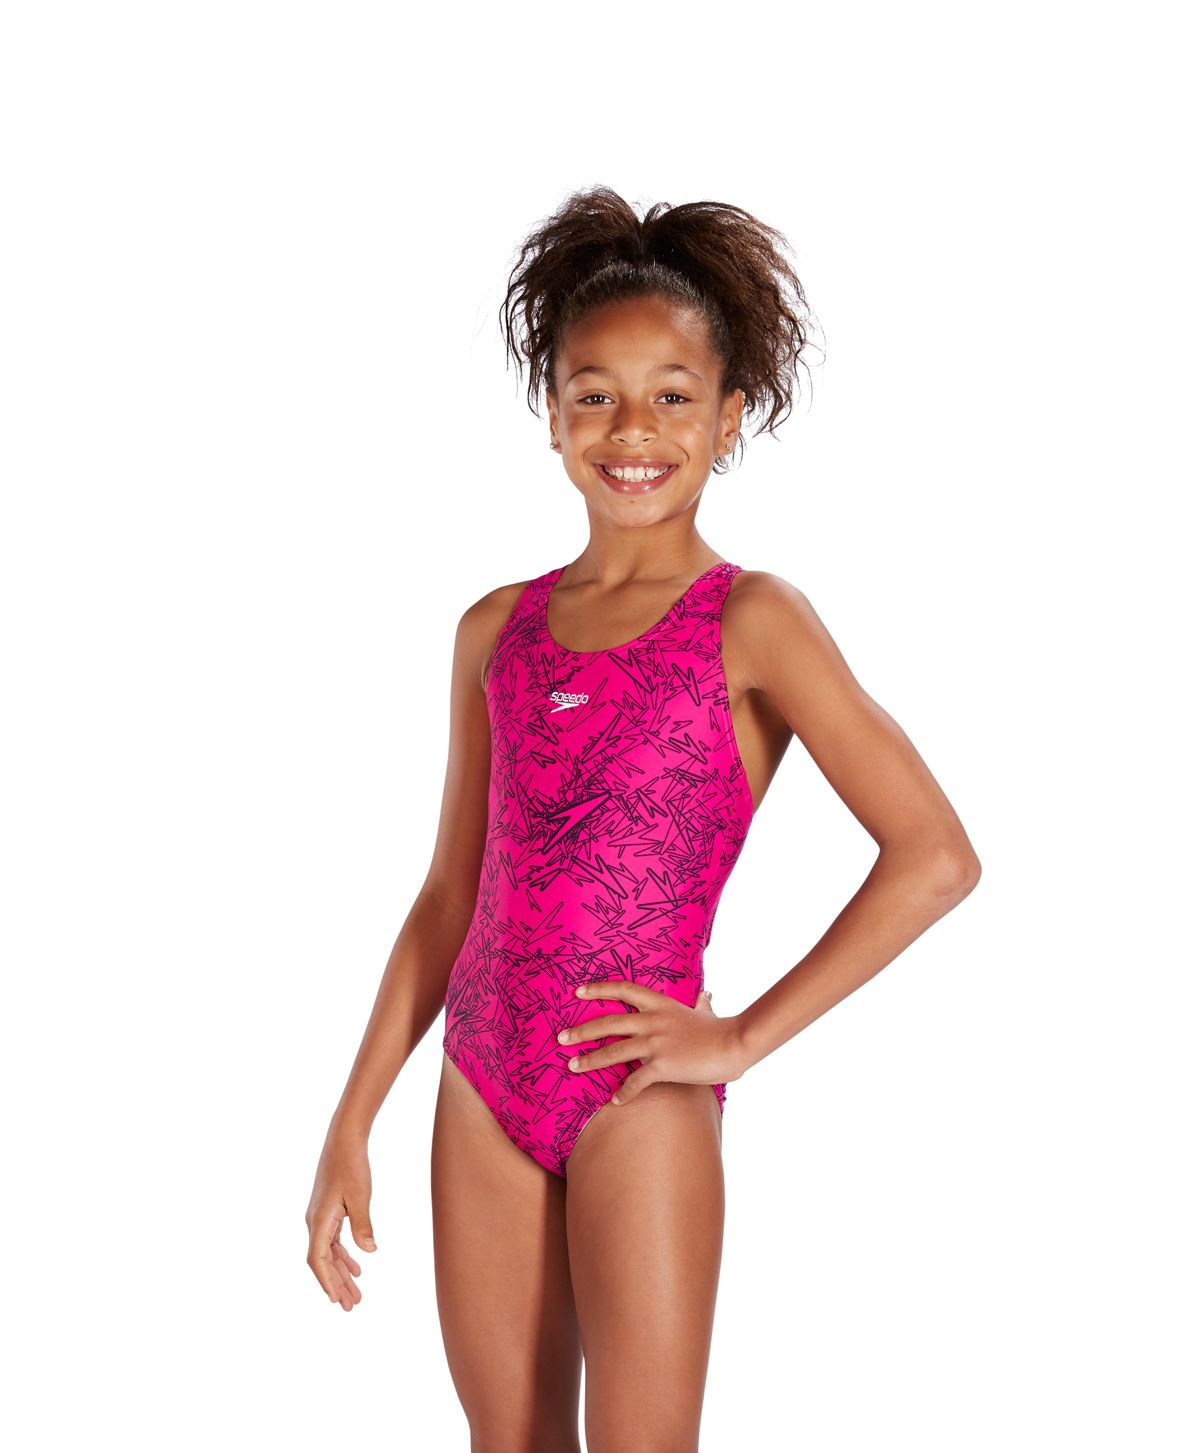 12c88a4598eab Speedo Boom Allover Splashback Endurance 10 Electric Pink/Black 8-10843B352  Junior Swimsuits